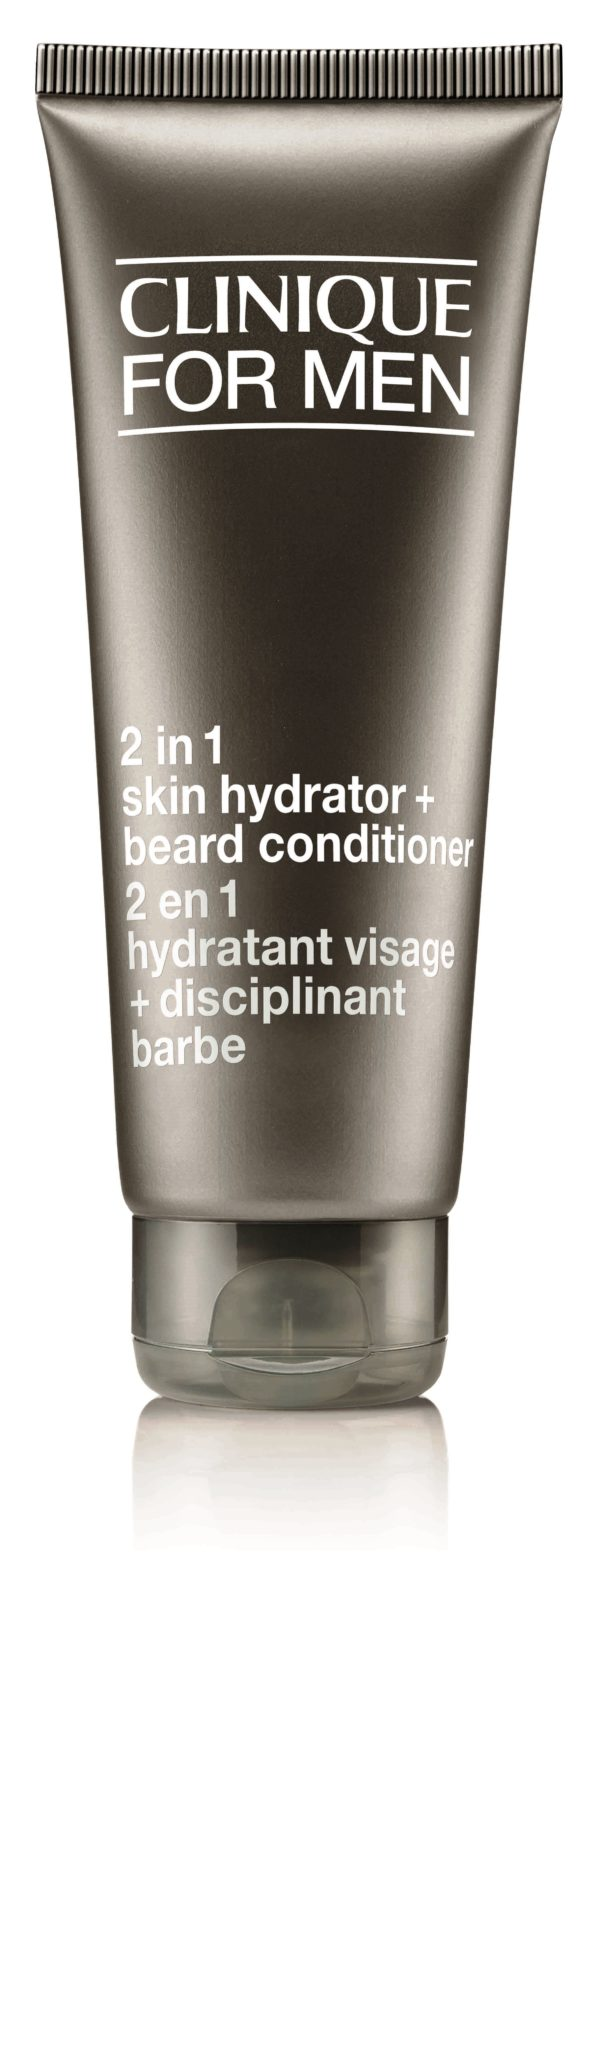 Nuovo Clinique for Men 2 in 1 Skin Hydrator & Beard Conditioner